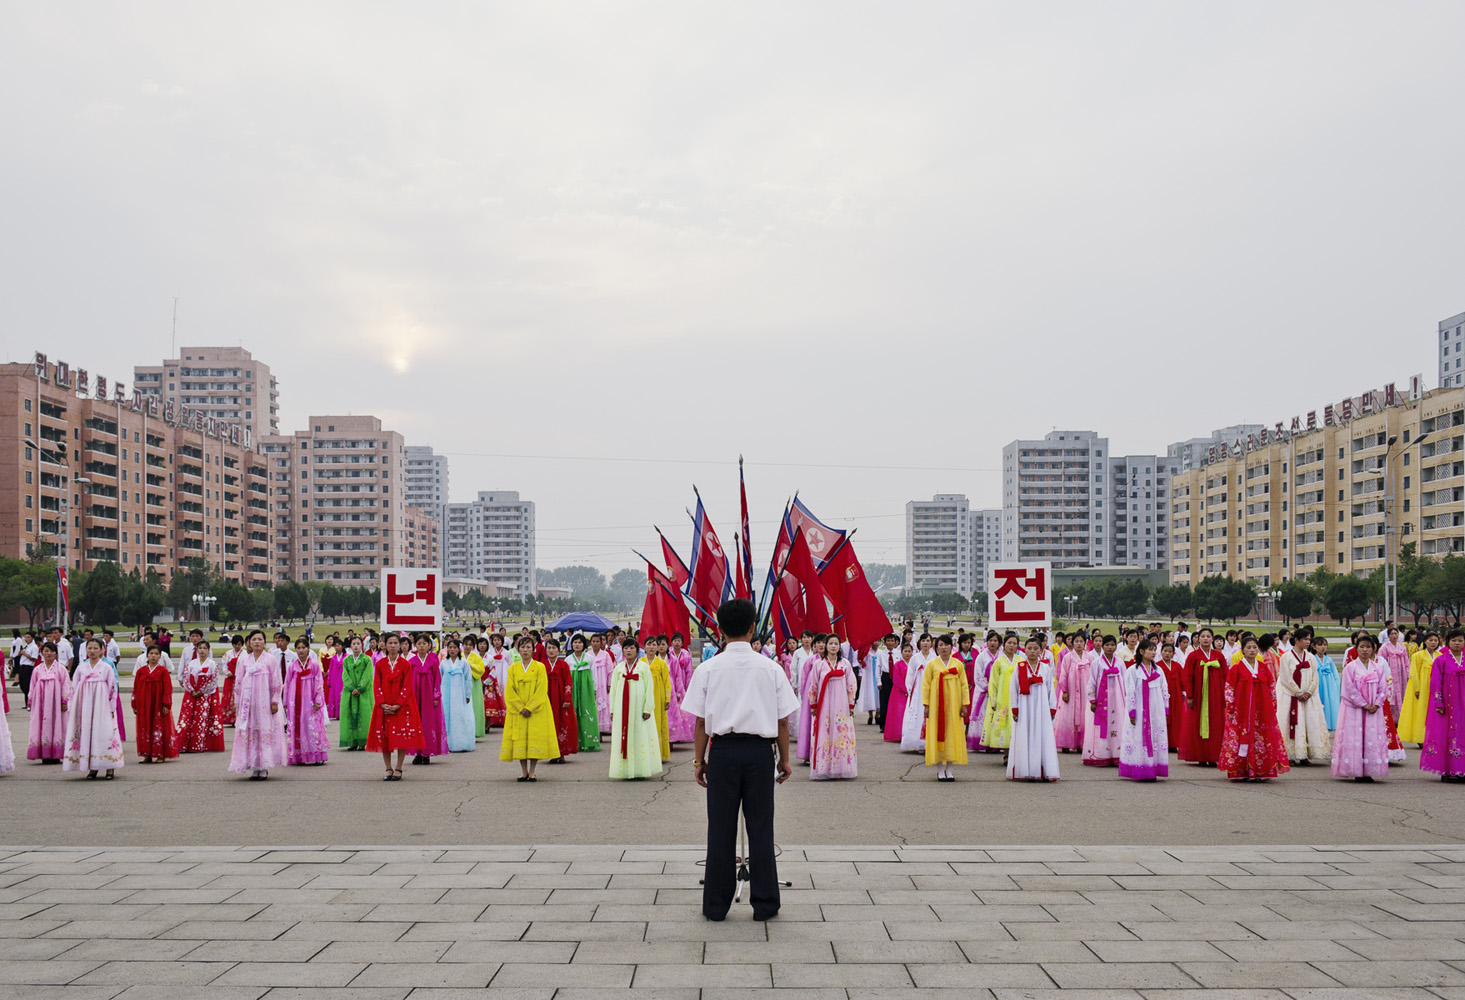 Mass Dance in Pyongyang on the National Day, 63rd Anniversary of DPRK.